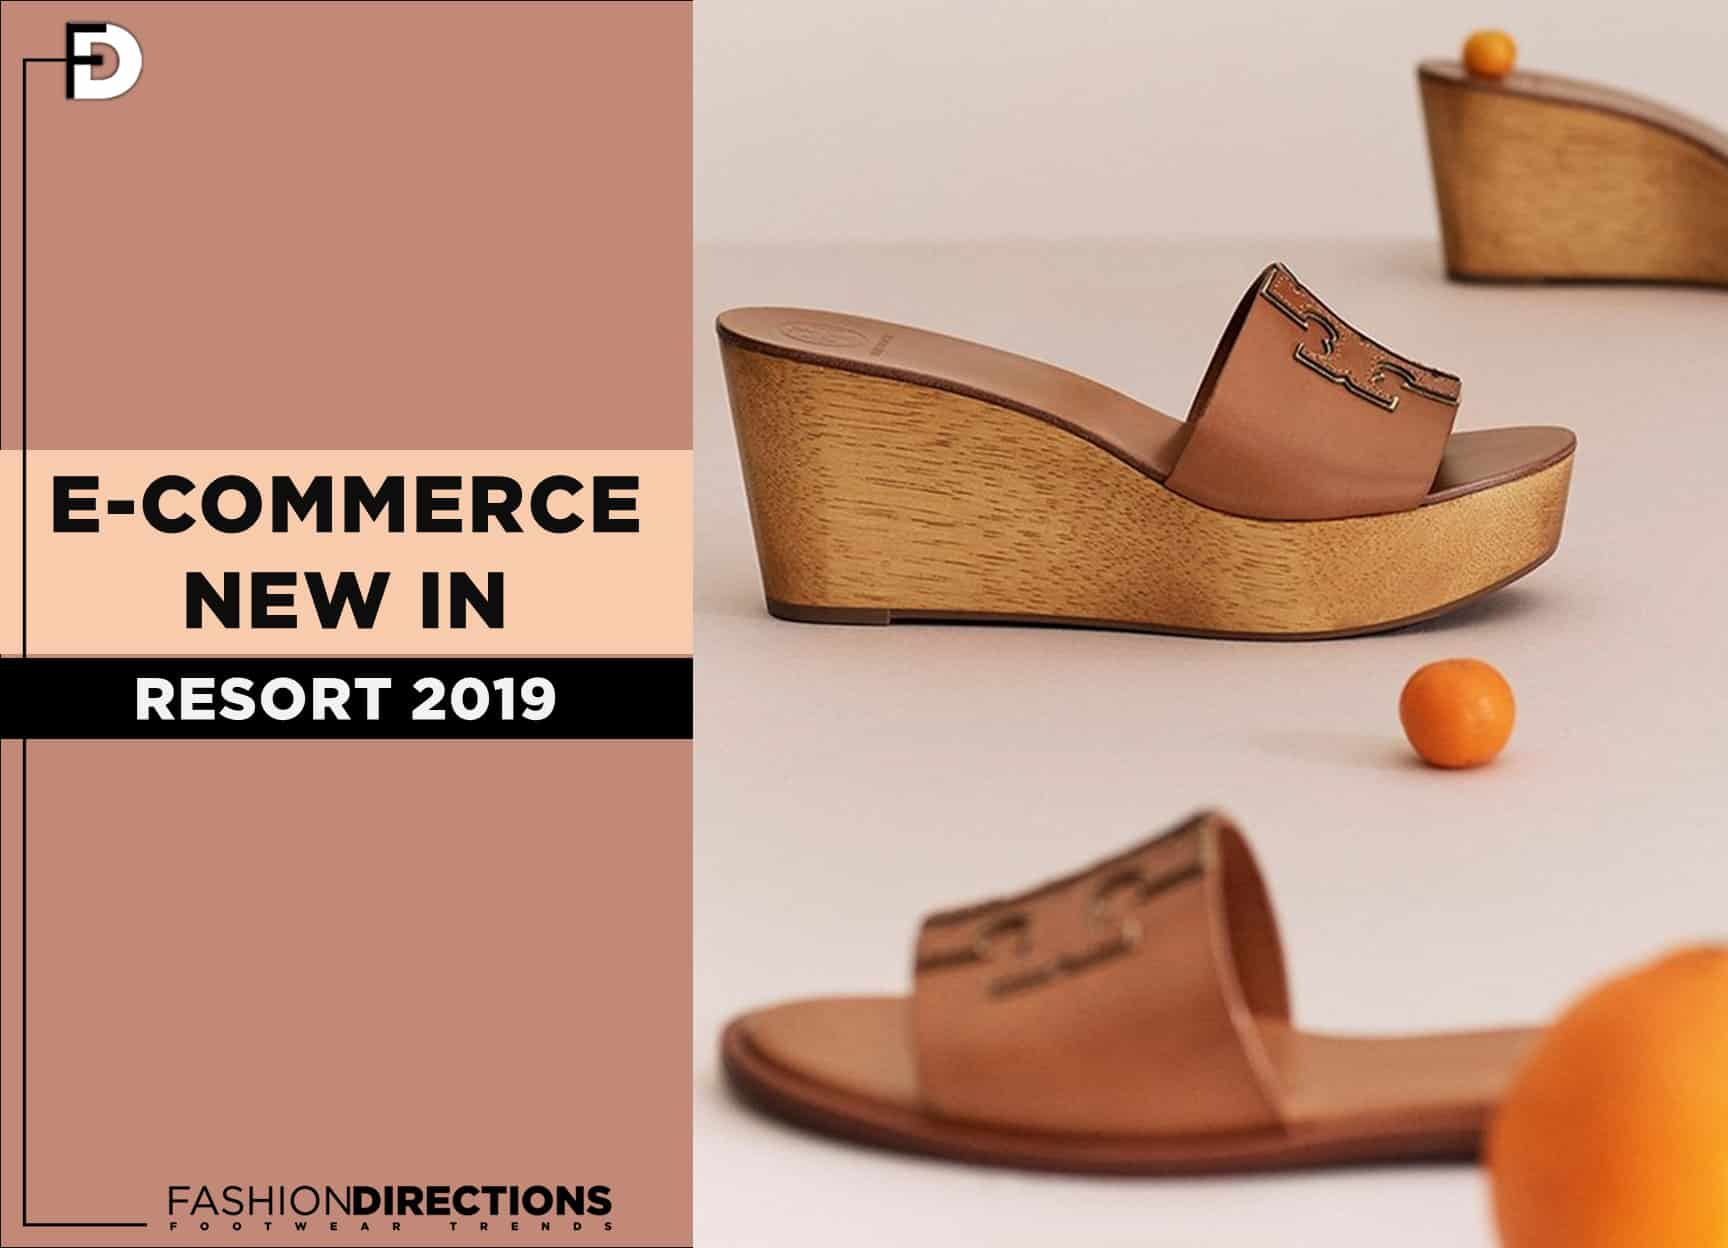 ecommerce new shoes resort 2019